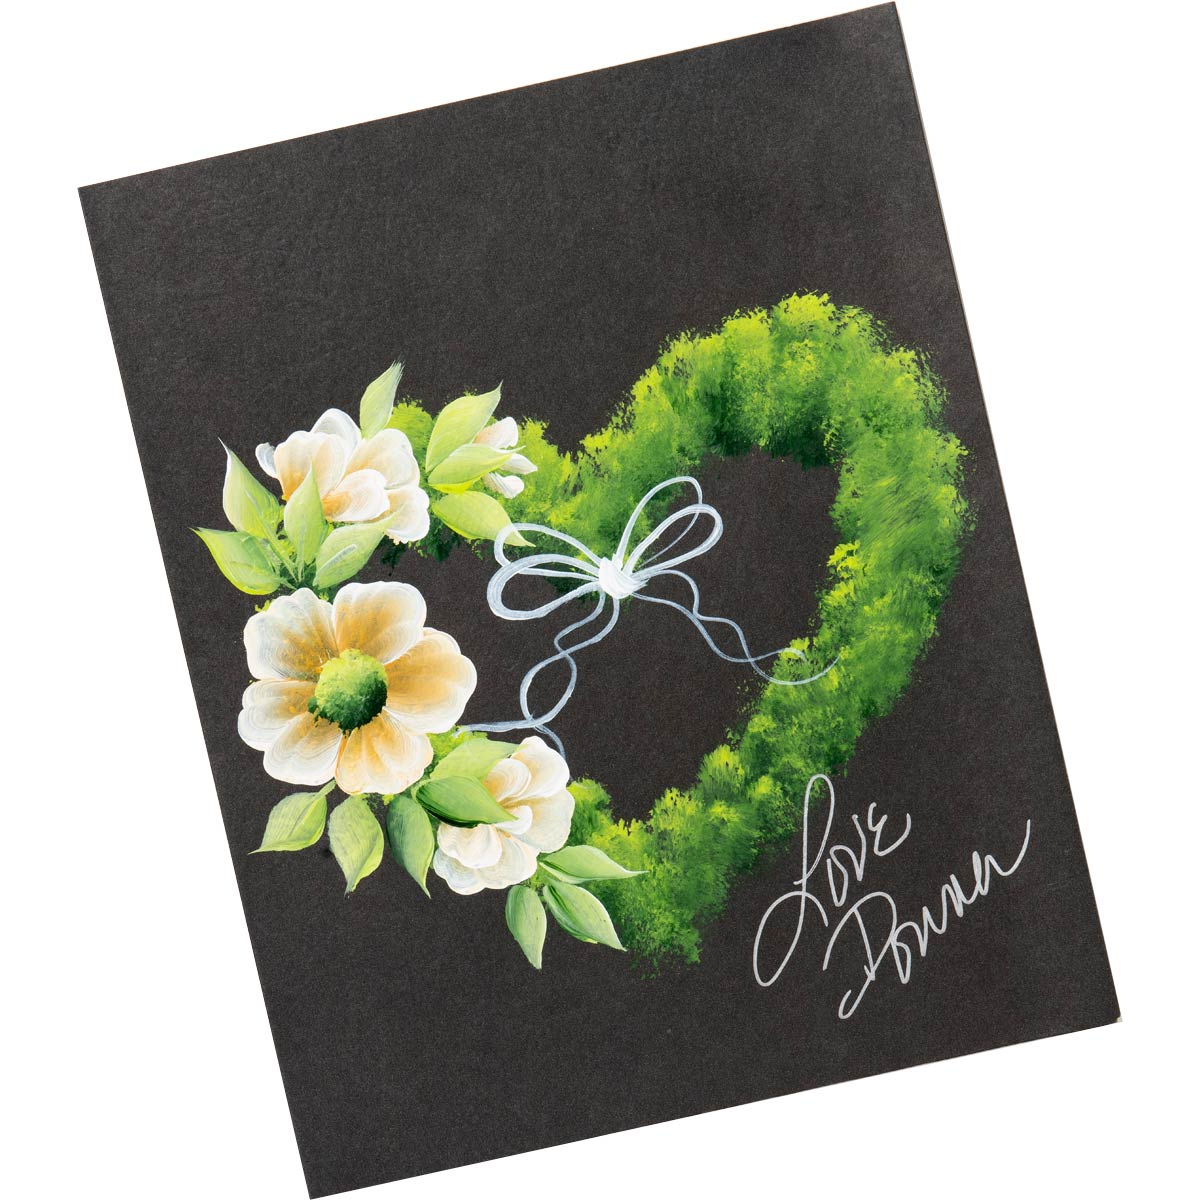 Let's Paint with FolkArt ® One Stroke™ Kit - Wreath of the Month - 99436